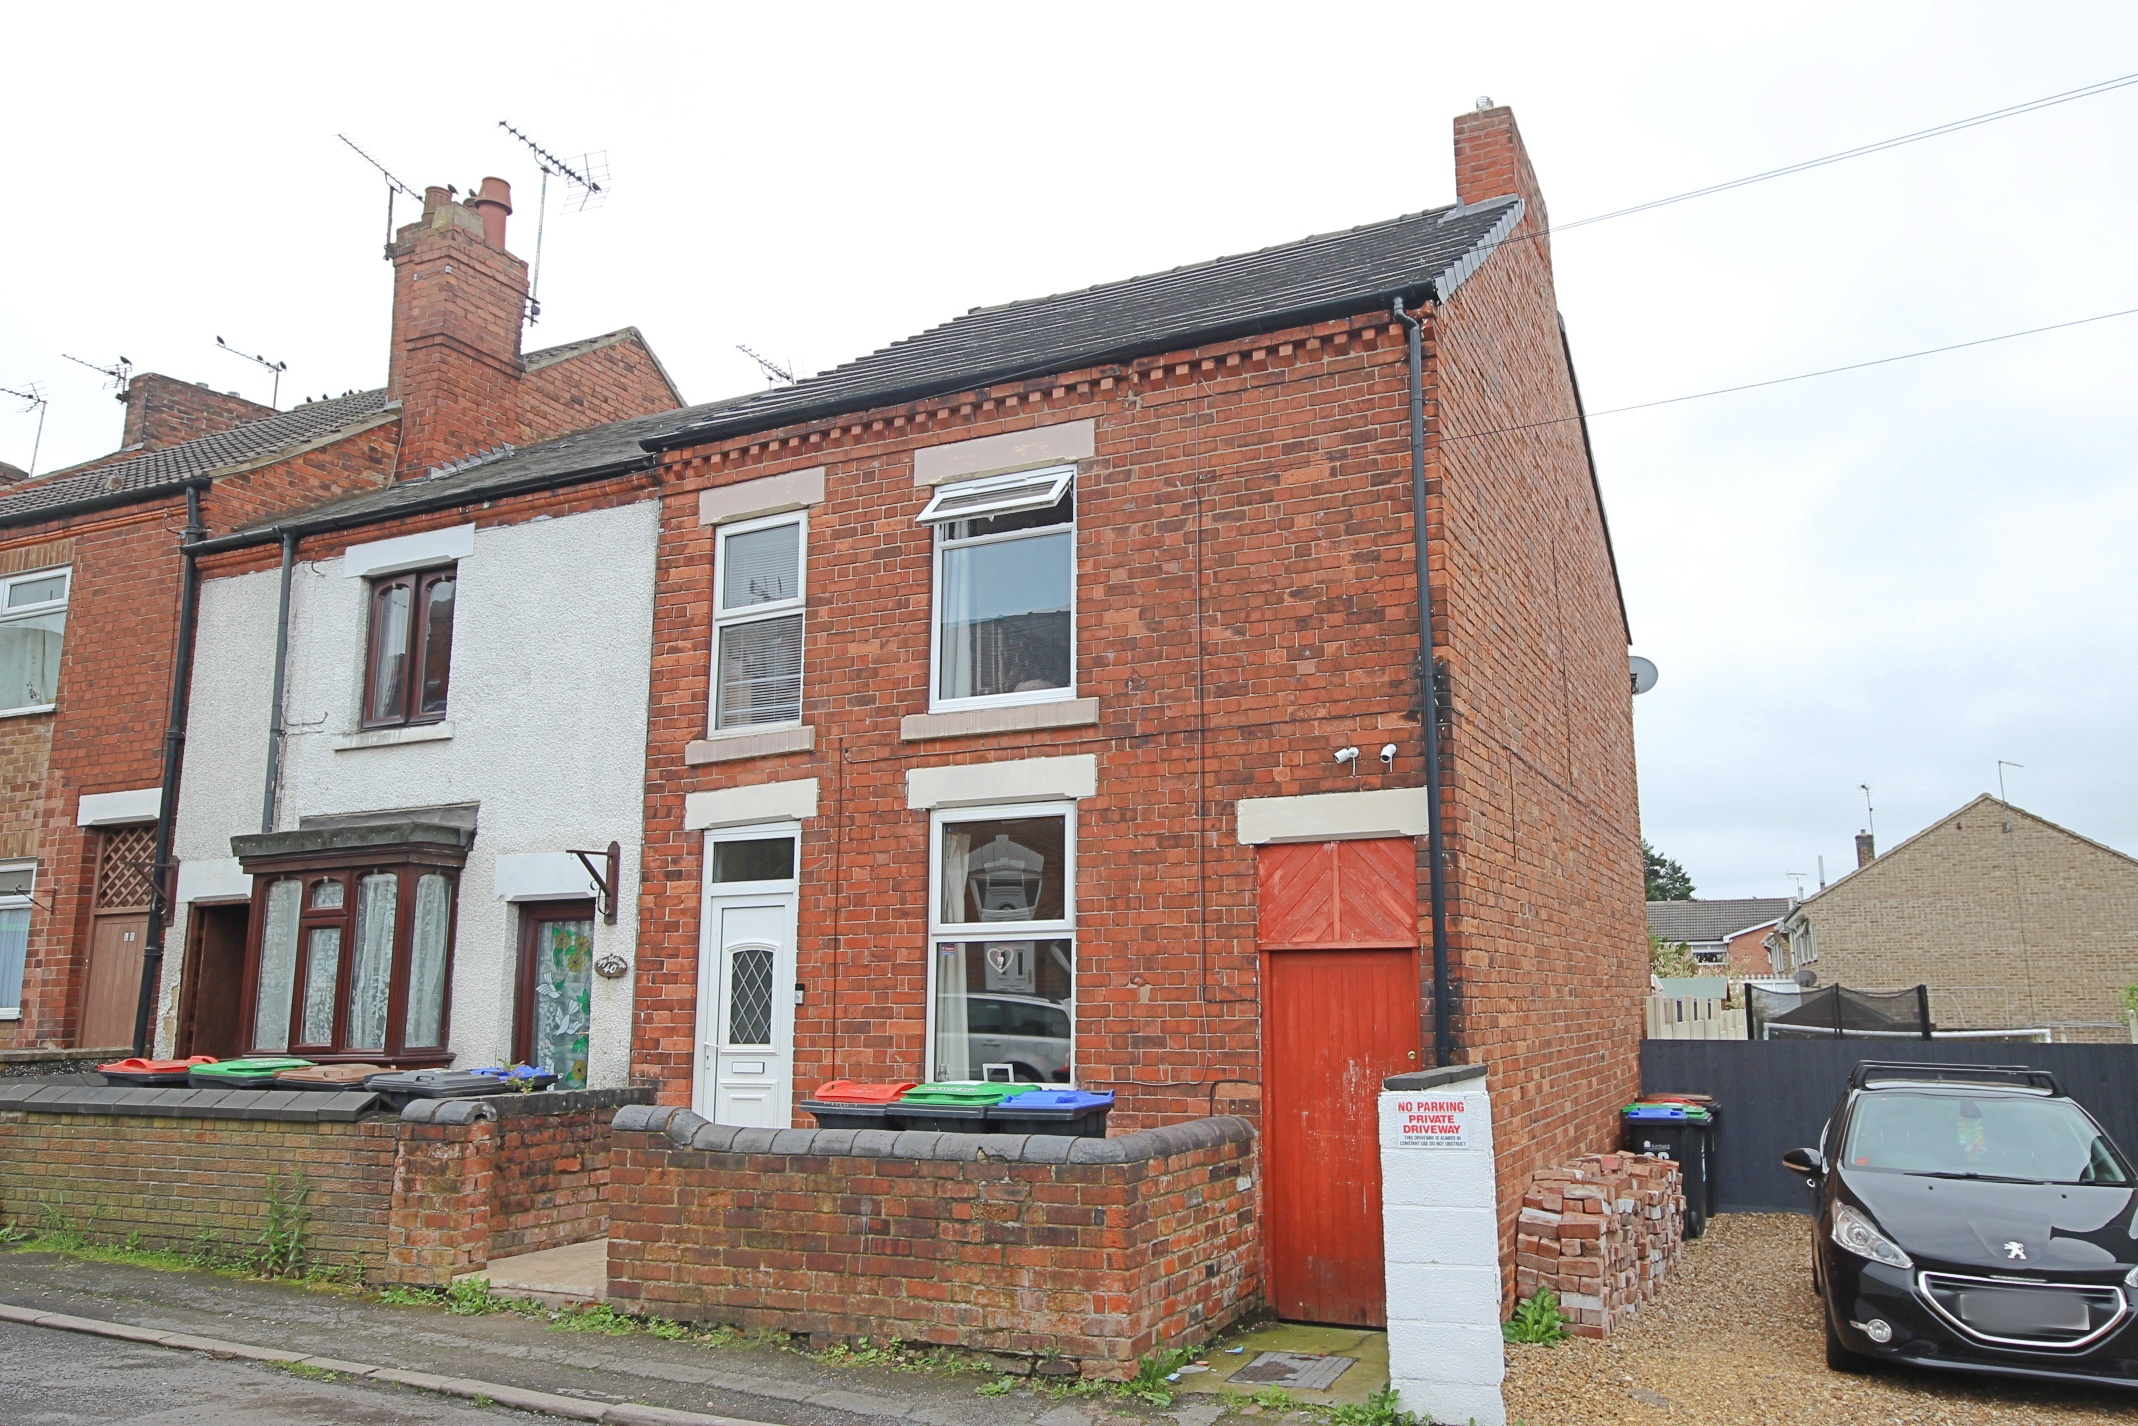 £92,000 Sedgwick Street, Jacksdale, Nottinghamshire, NG16 5JY - 2/3 BEDROOM END TERRACEA great size family home, perfect for first time buyers or investors! Comprising of two receptions, a kitchen, two bedrooms, a dressing room and a modern bathroom, plus a private rear garden all located in the heart of Jacksdale village. EPC rating D.